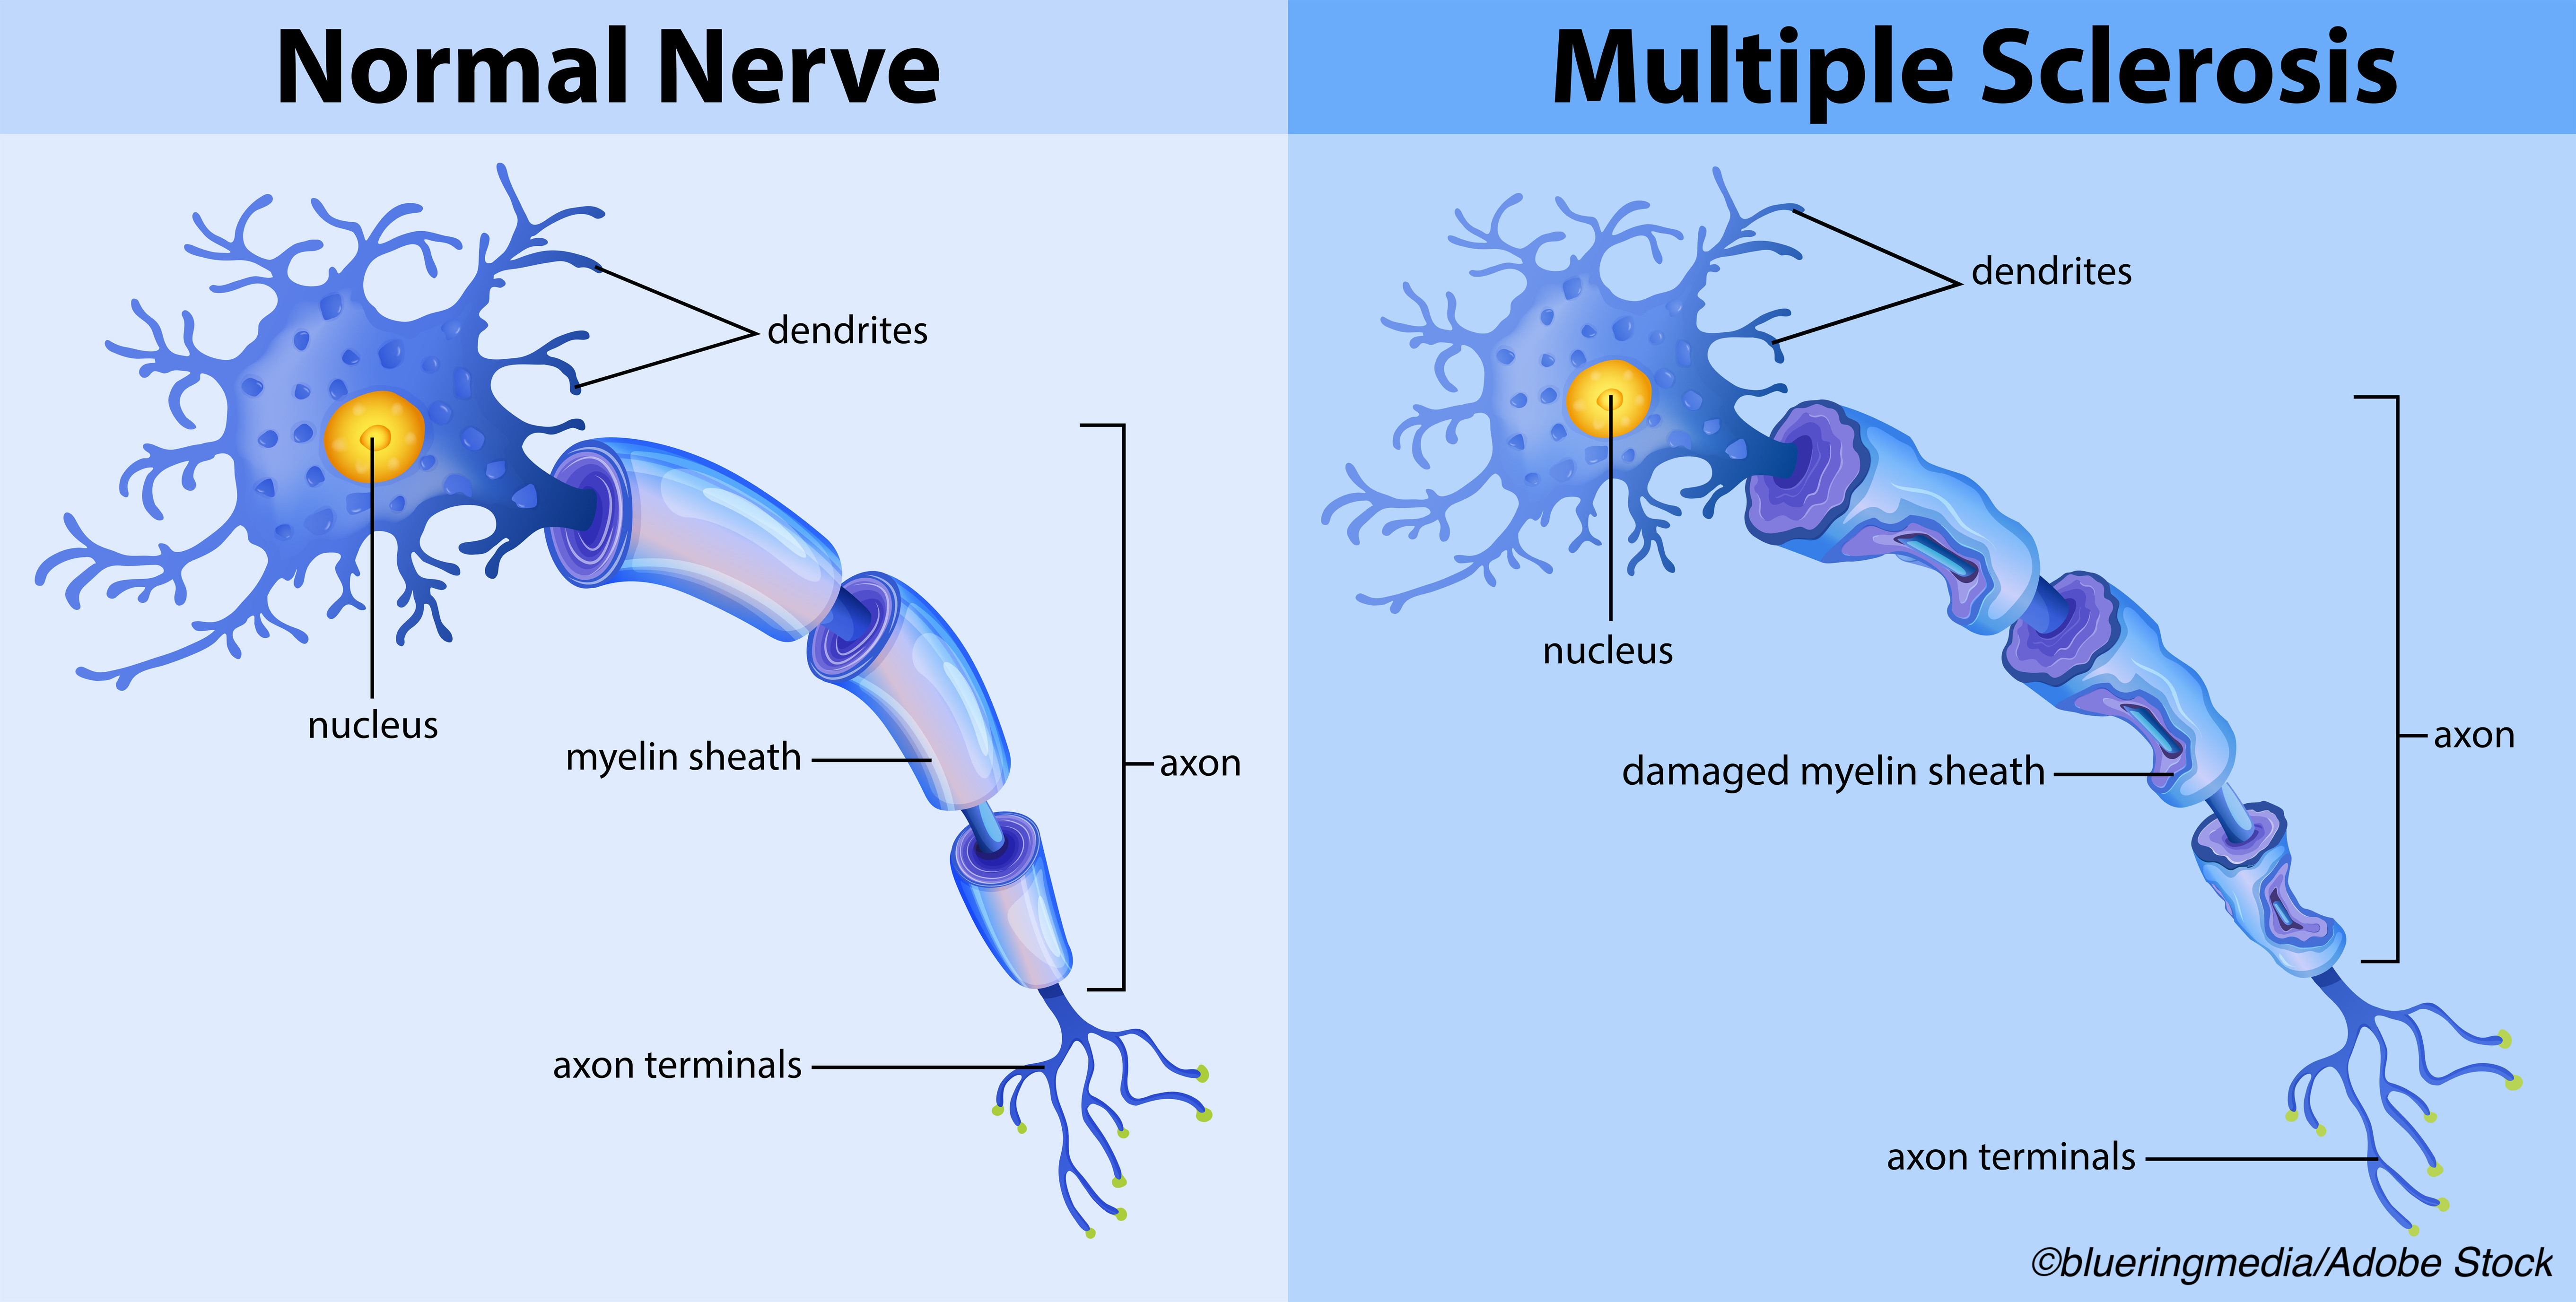 Lateral Tx Switches in Patients with Clinically Stable MS Do Not Increase Risks of Relapse, Disability